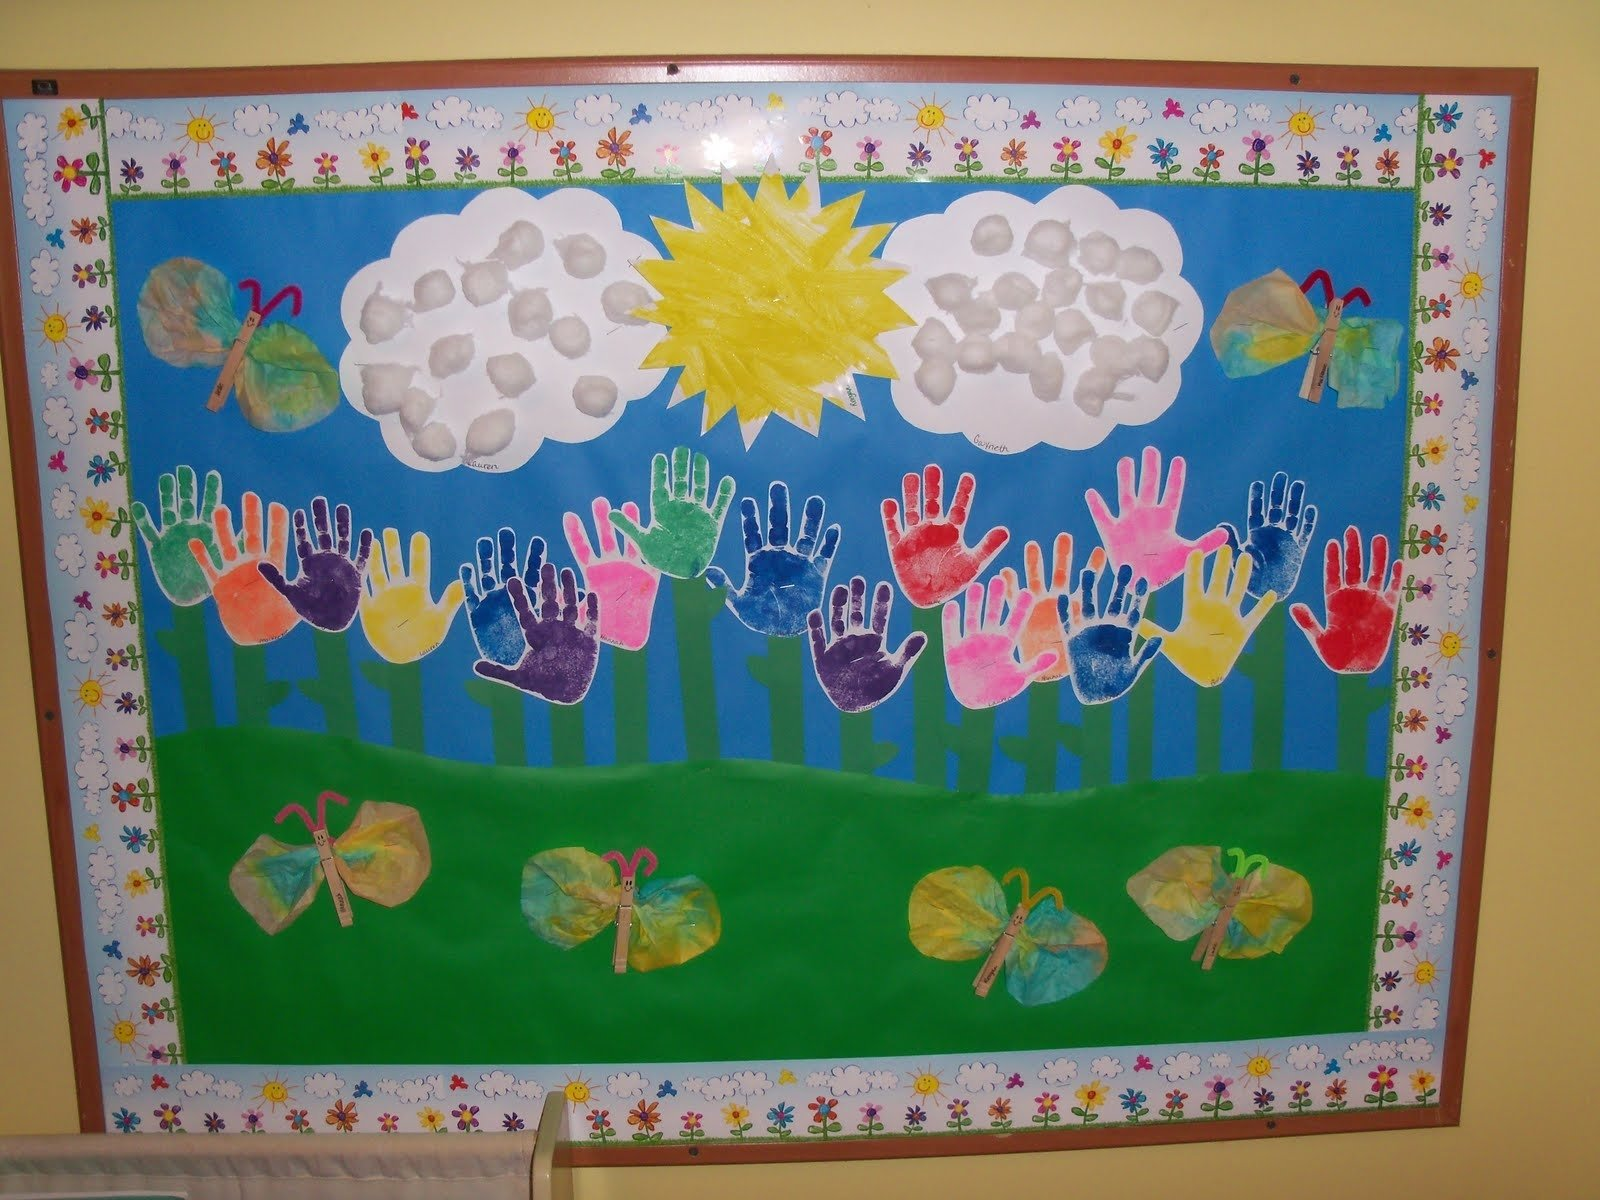 10 Spectacular April Bulletin Board Ideas For Teachers spring craft ideas the thoughtful spot day care spring fun